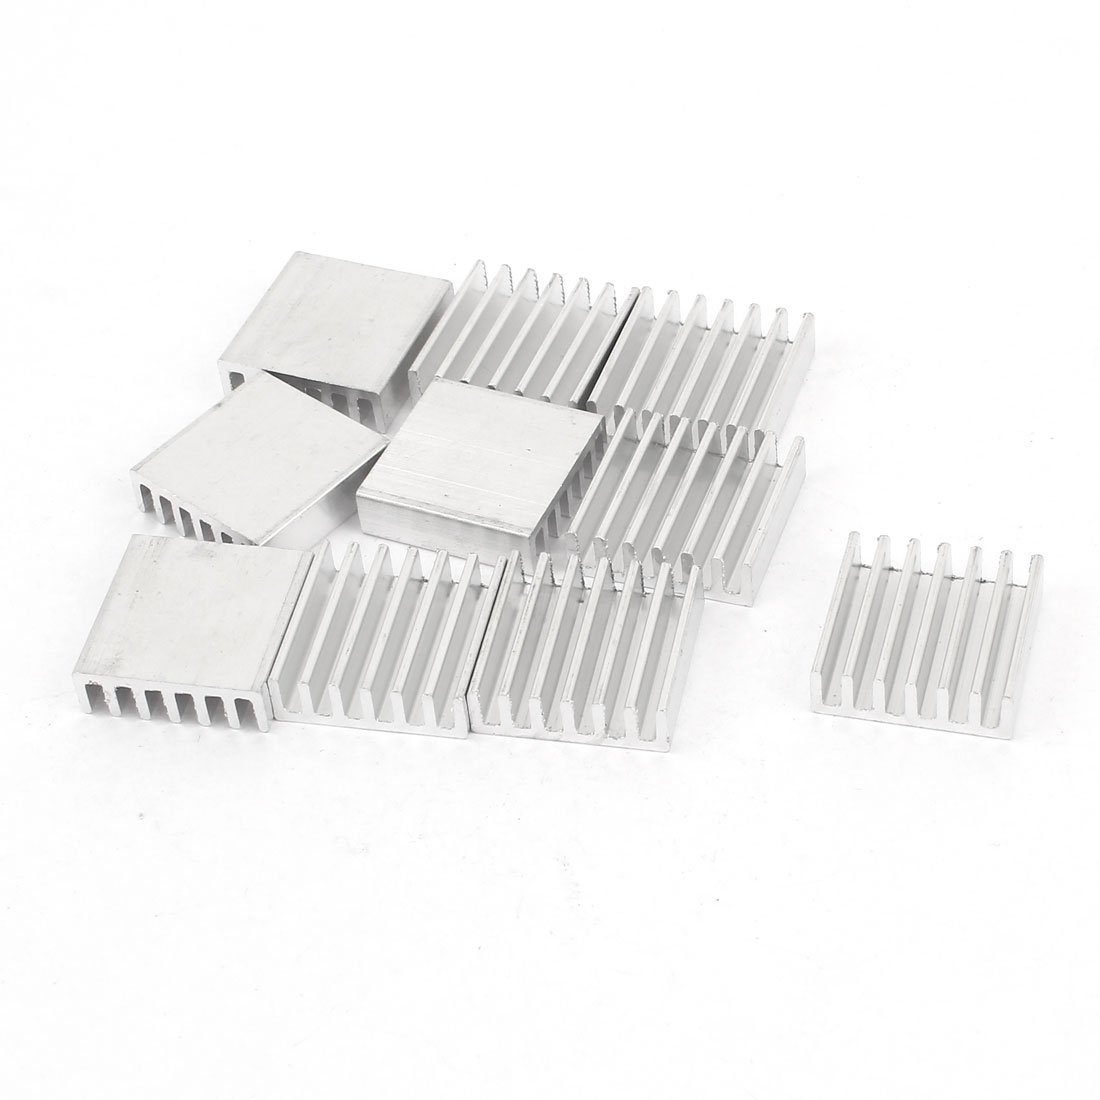 10 Pcs Silver Tone Aluminum Cooler Radiator Heat Sink Heatsink 20mm x 20mm x 6mm